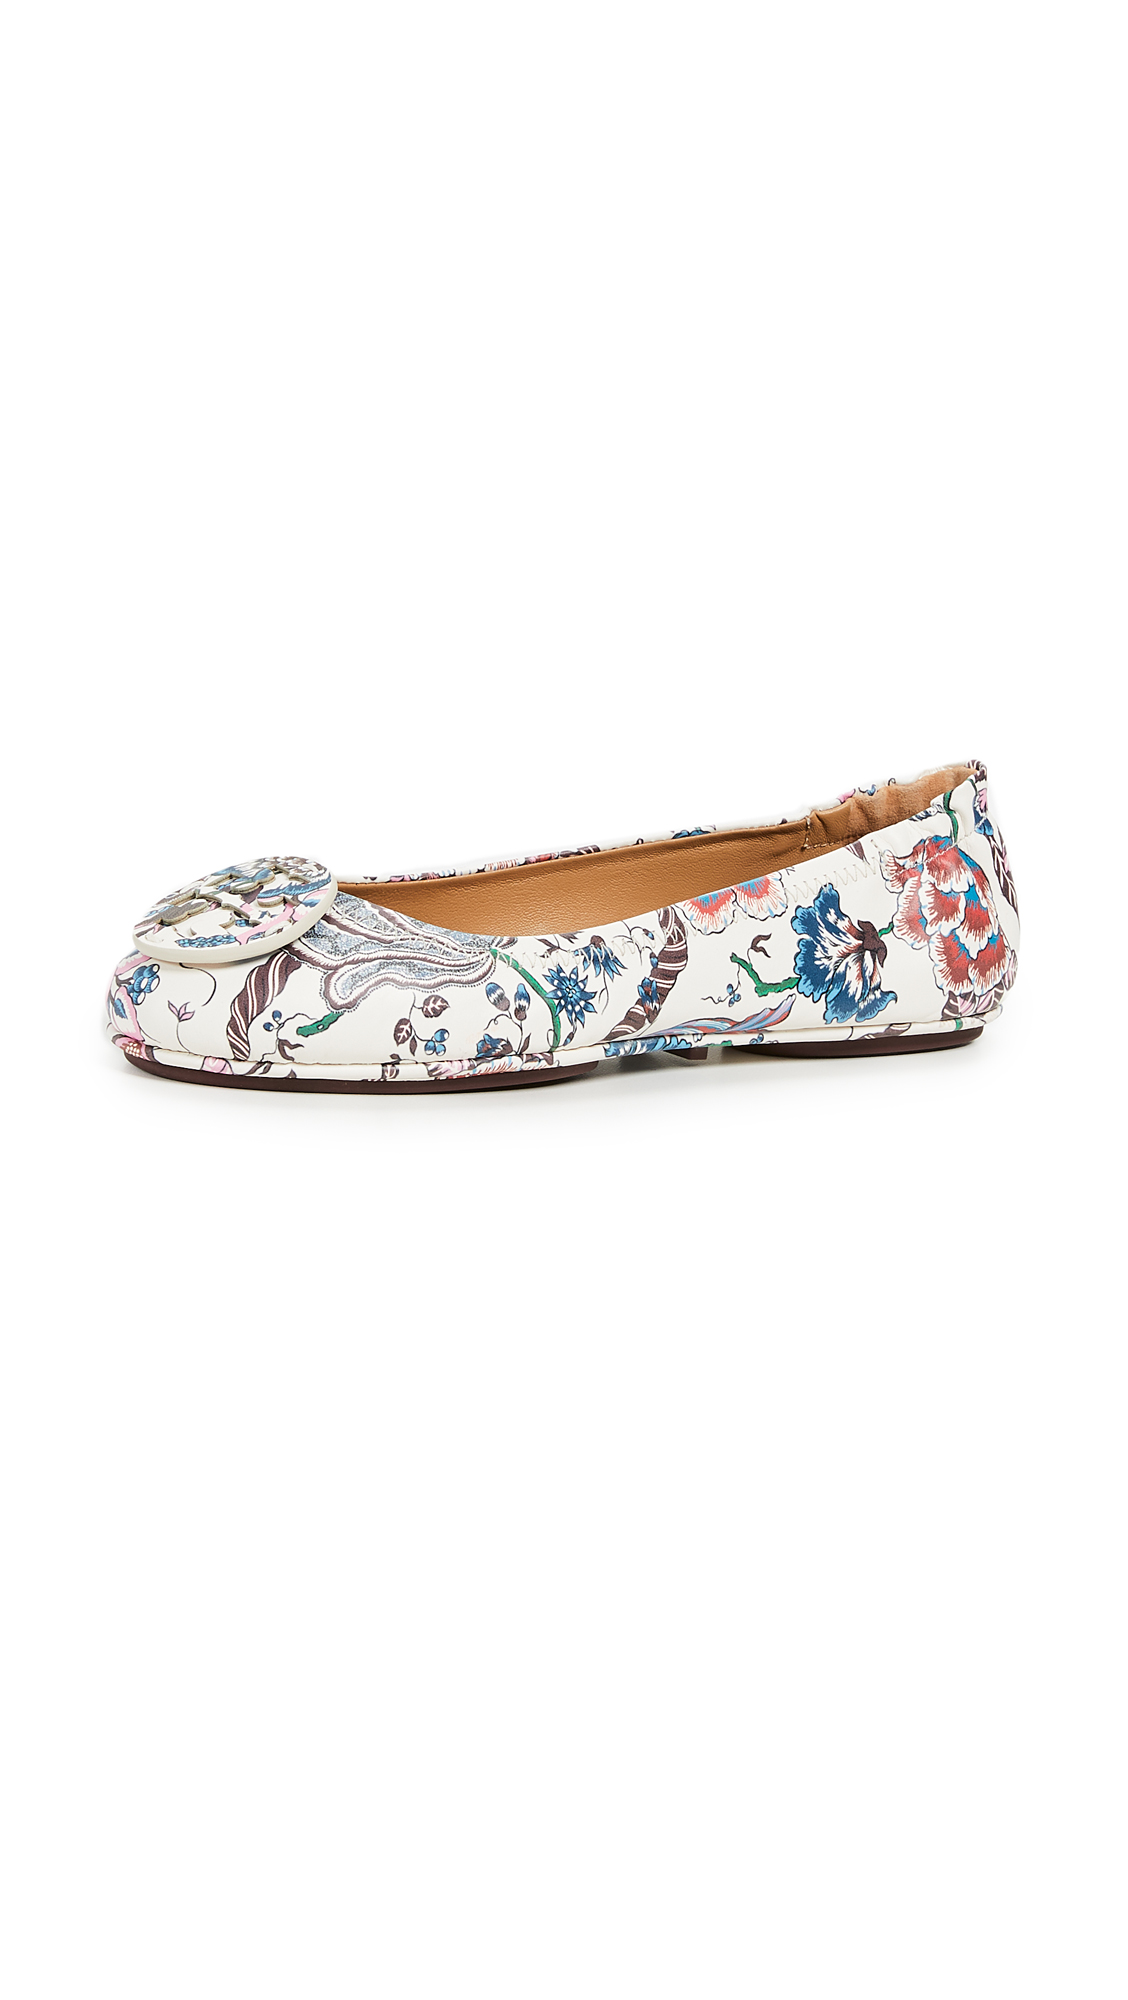 Tory Burch Minnie Travel Ballet Flats - Happy Times